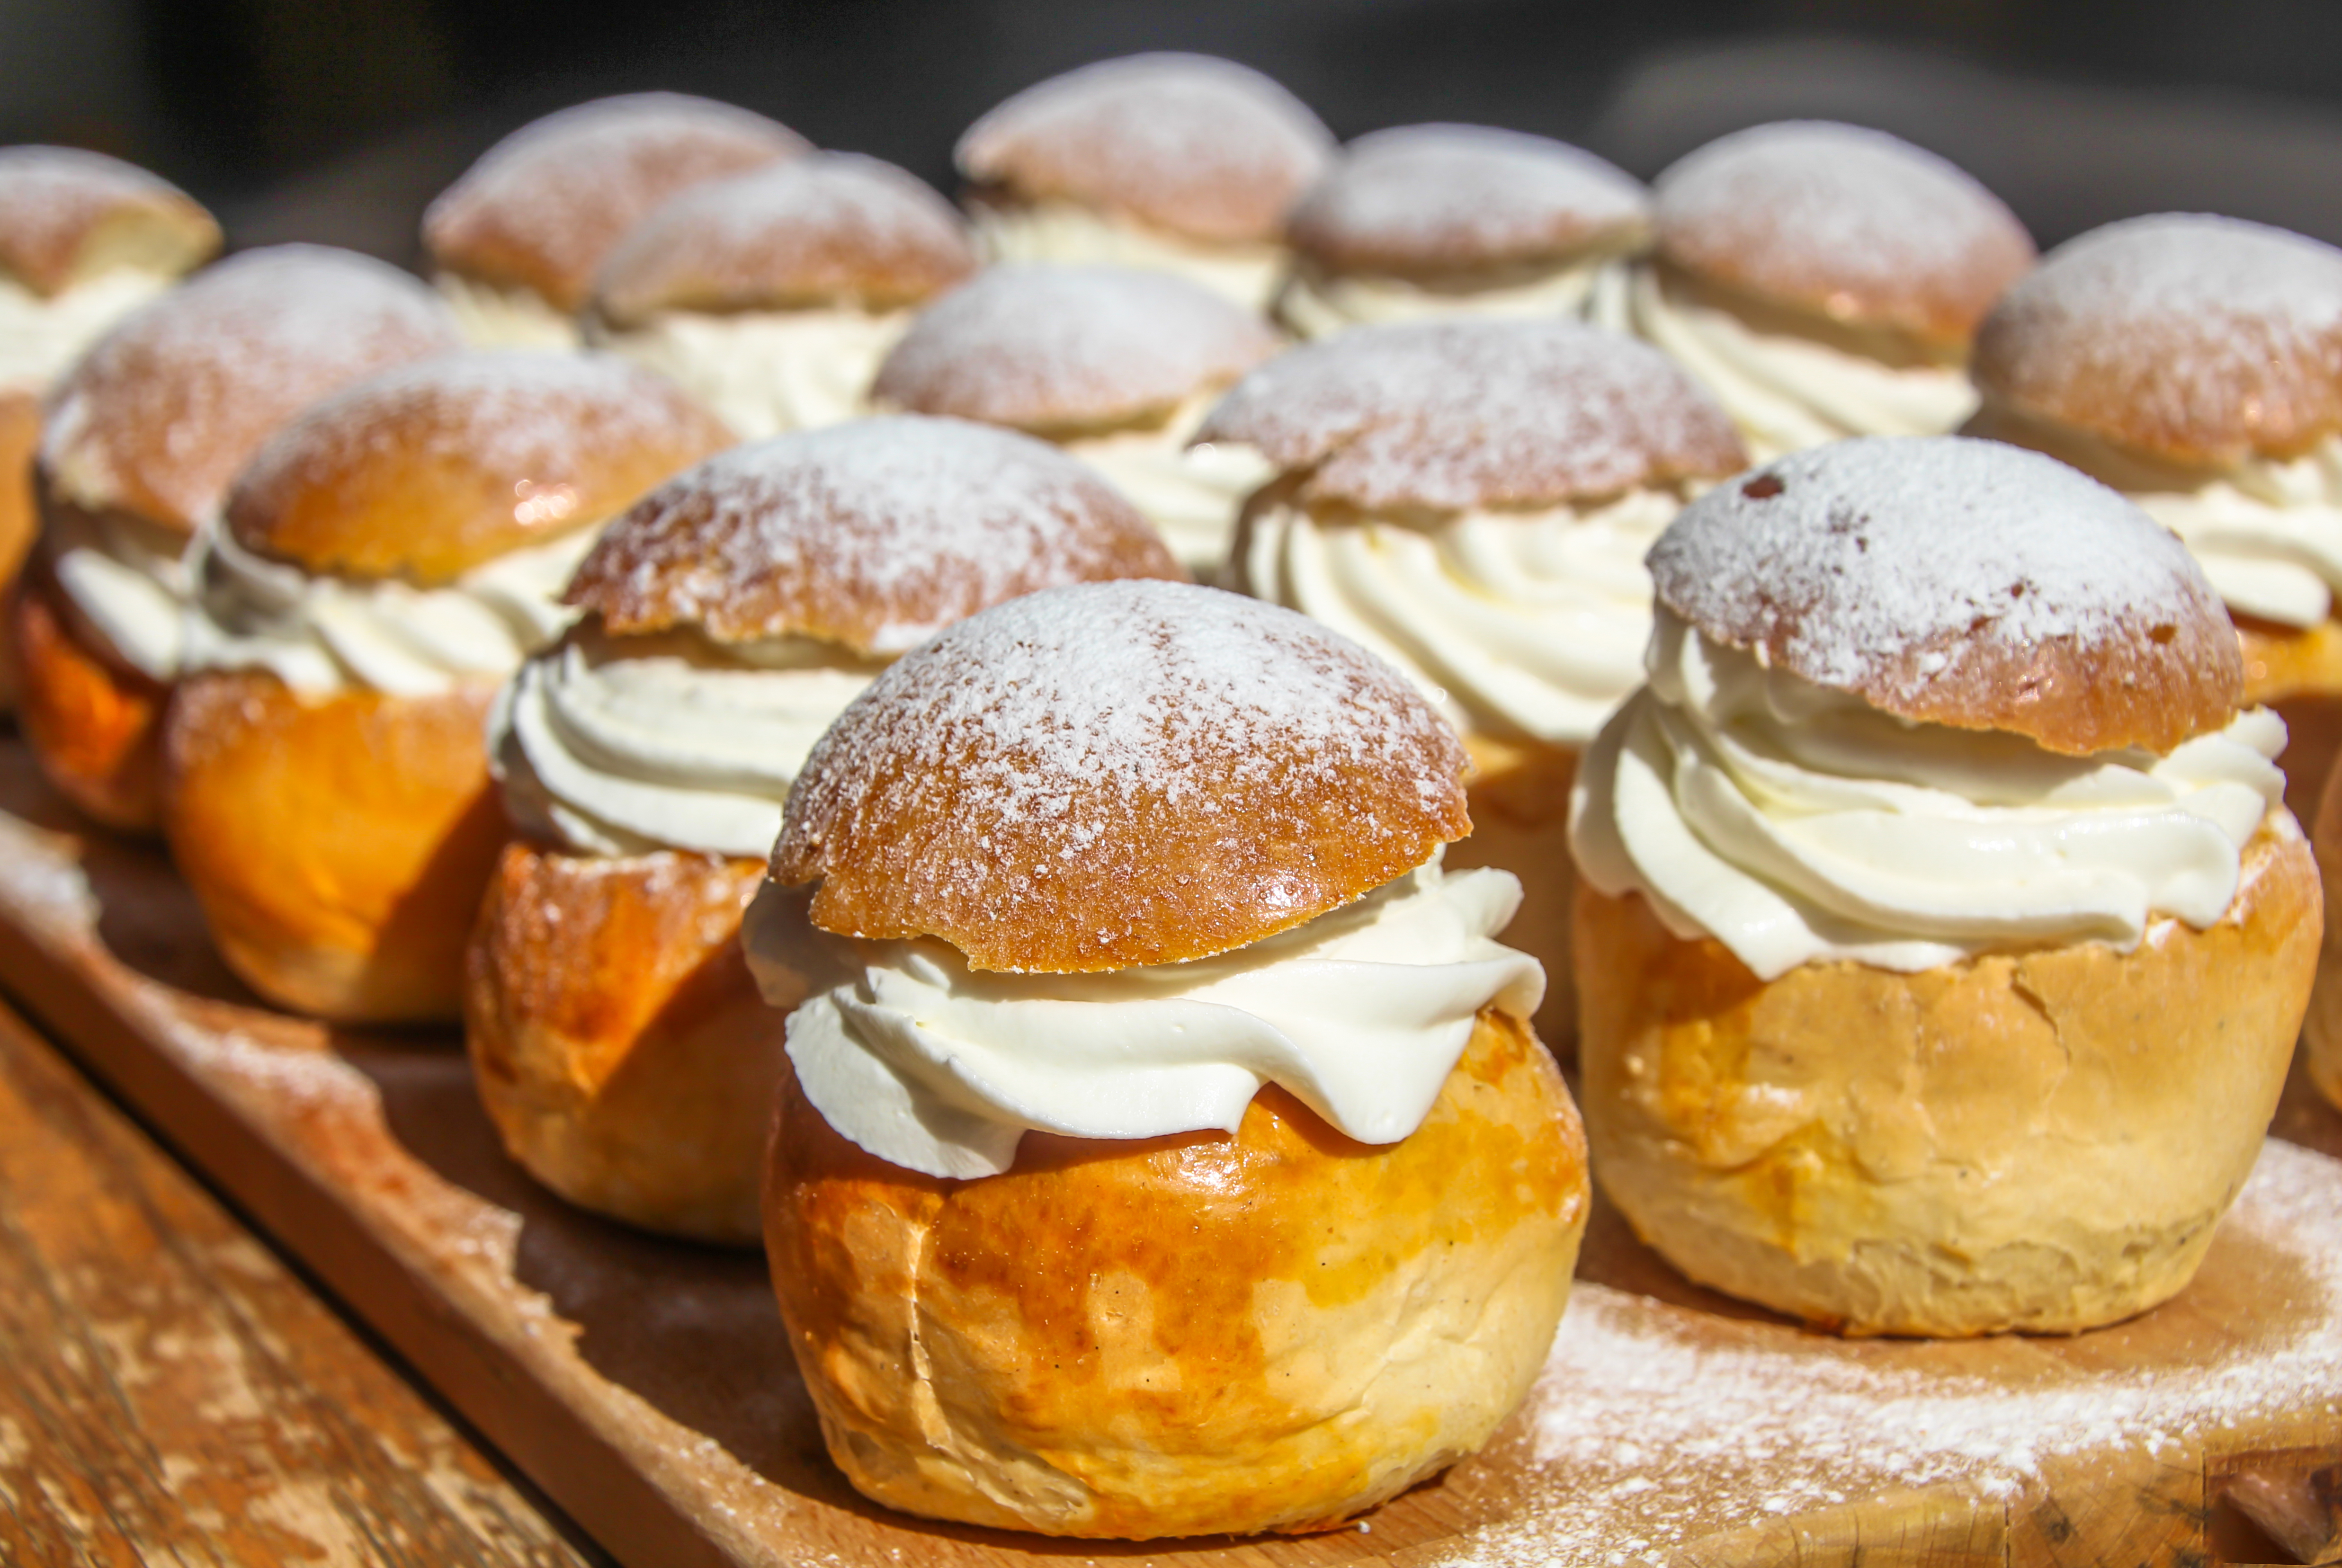 A cutting board with rows of semlor pastries, cream filled and dusted with powdered sugar.